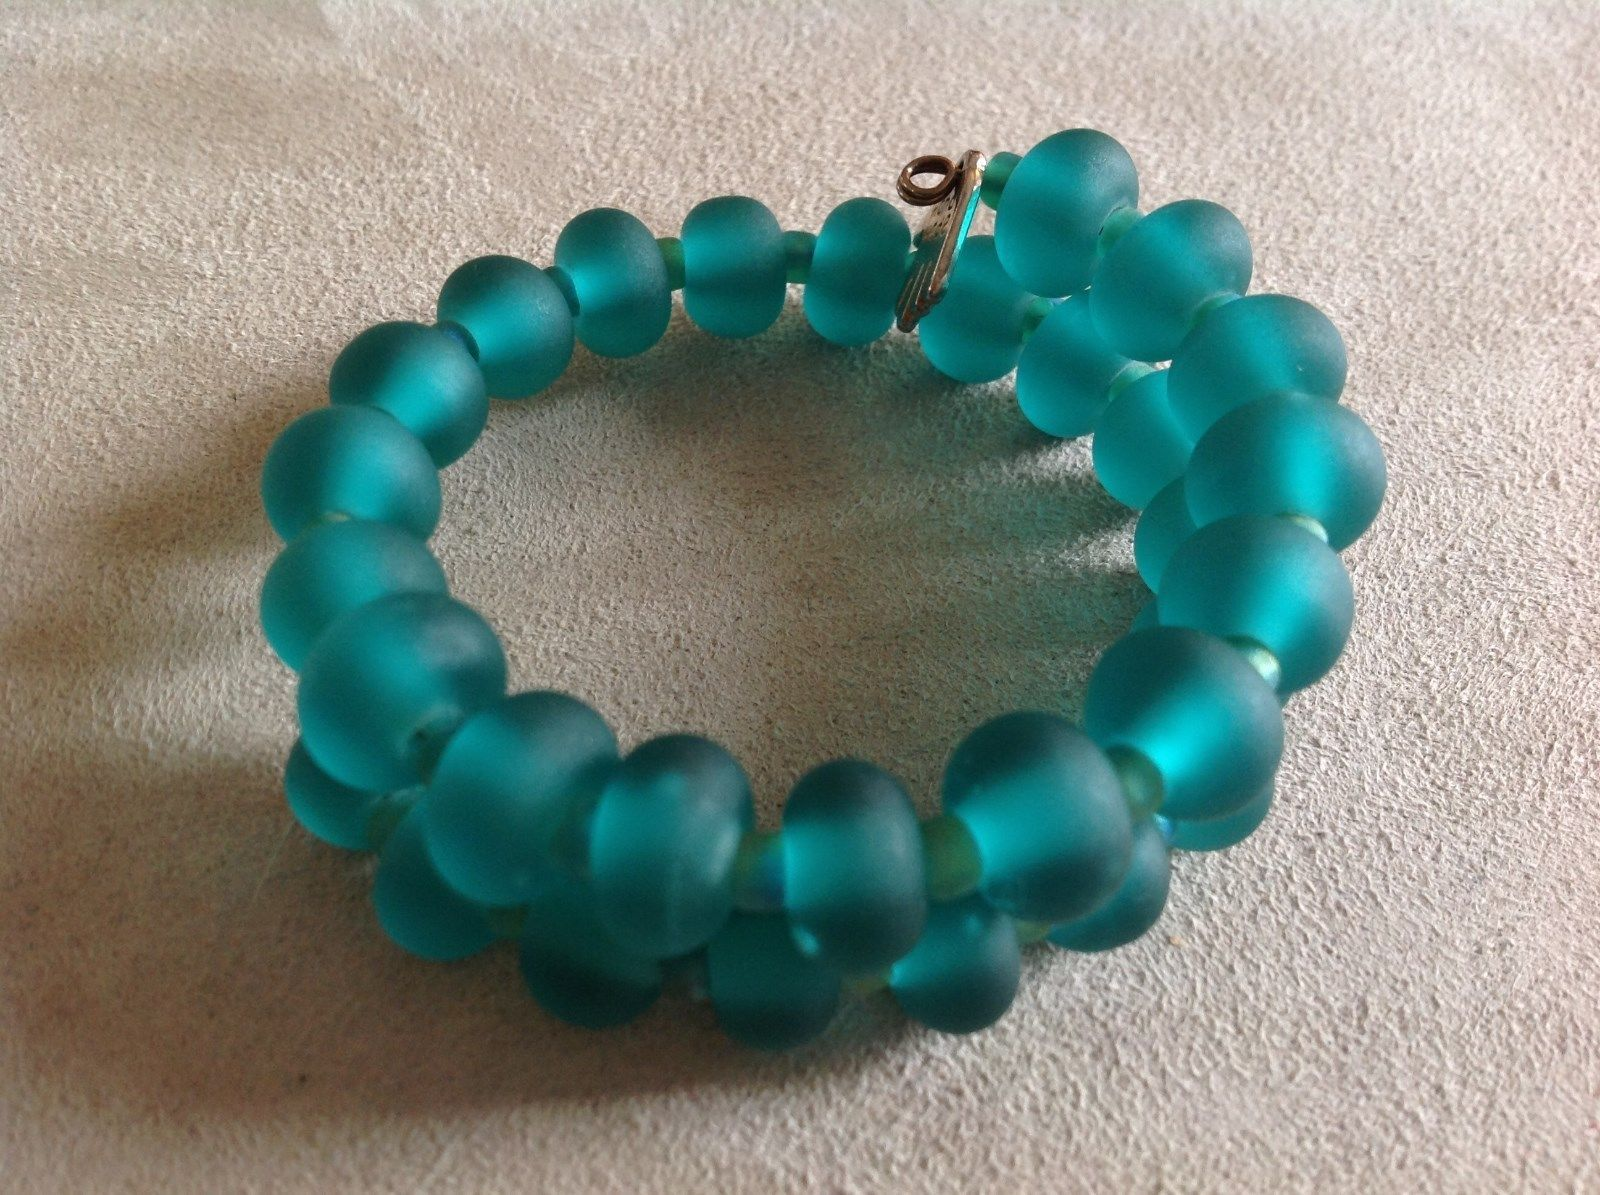 Teal Glass Frosted Rondelle Memory Wire Bracelet Handmade Lampwork